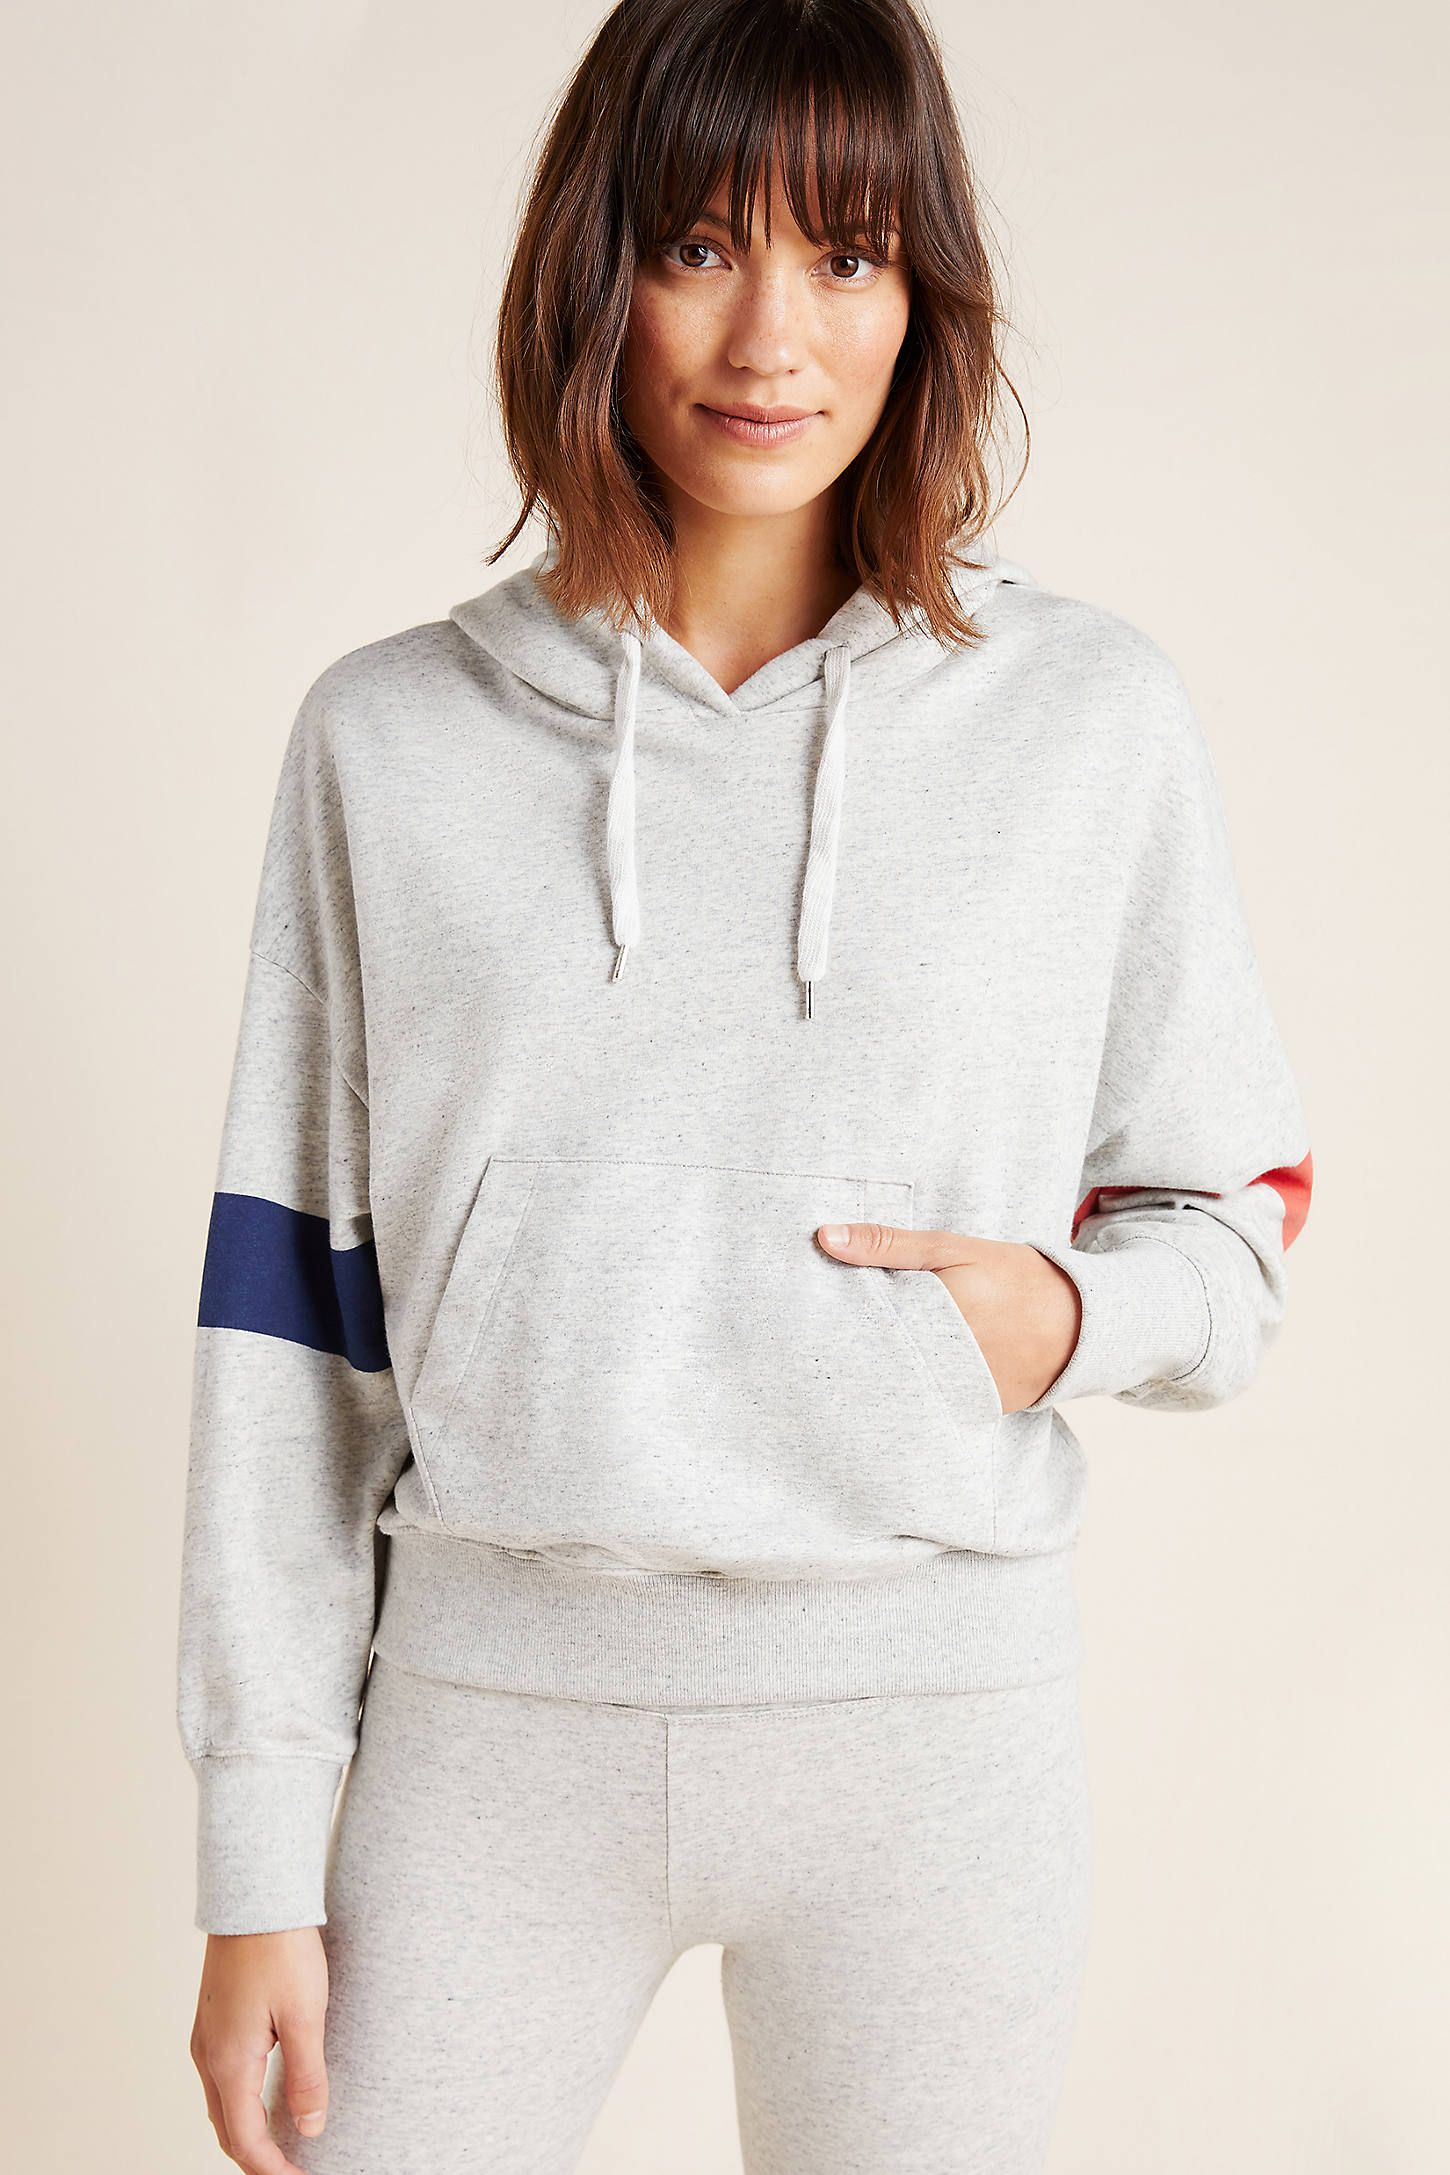 Sundry Striped Hoodie by in Grey Size: M, Women's Activewear at Anthropologie